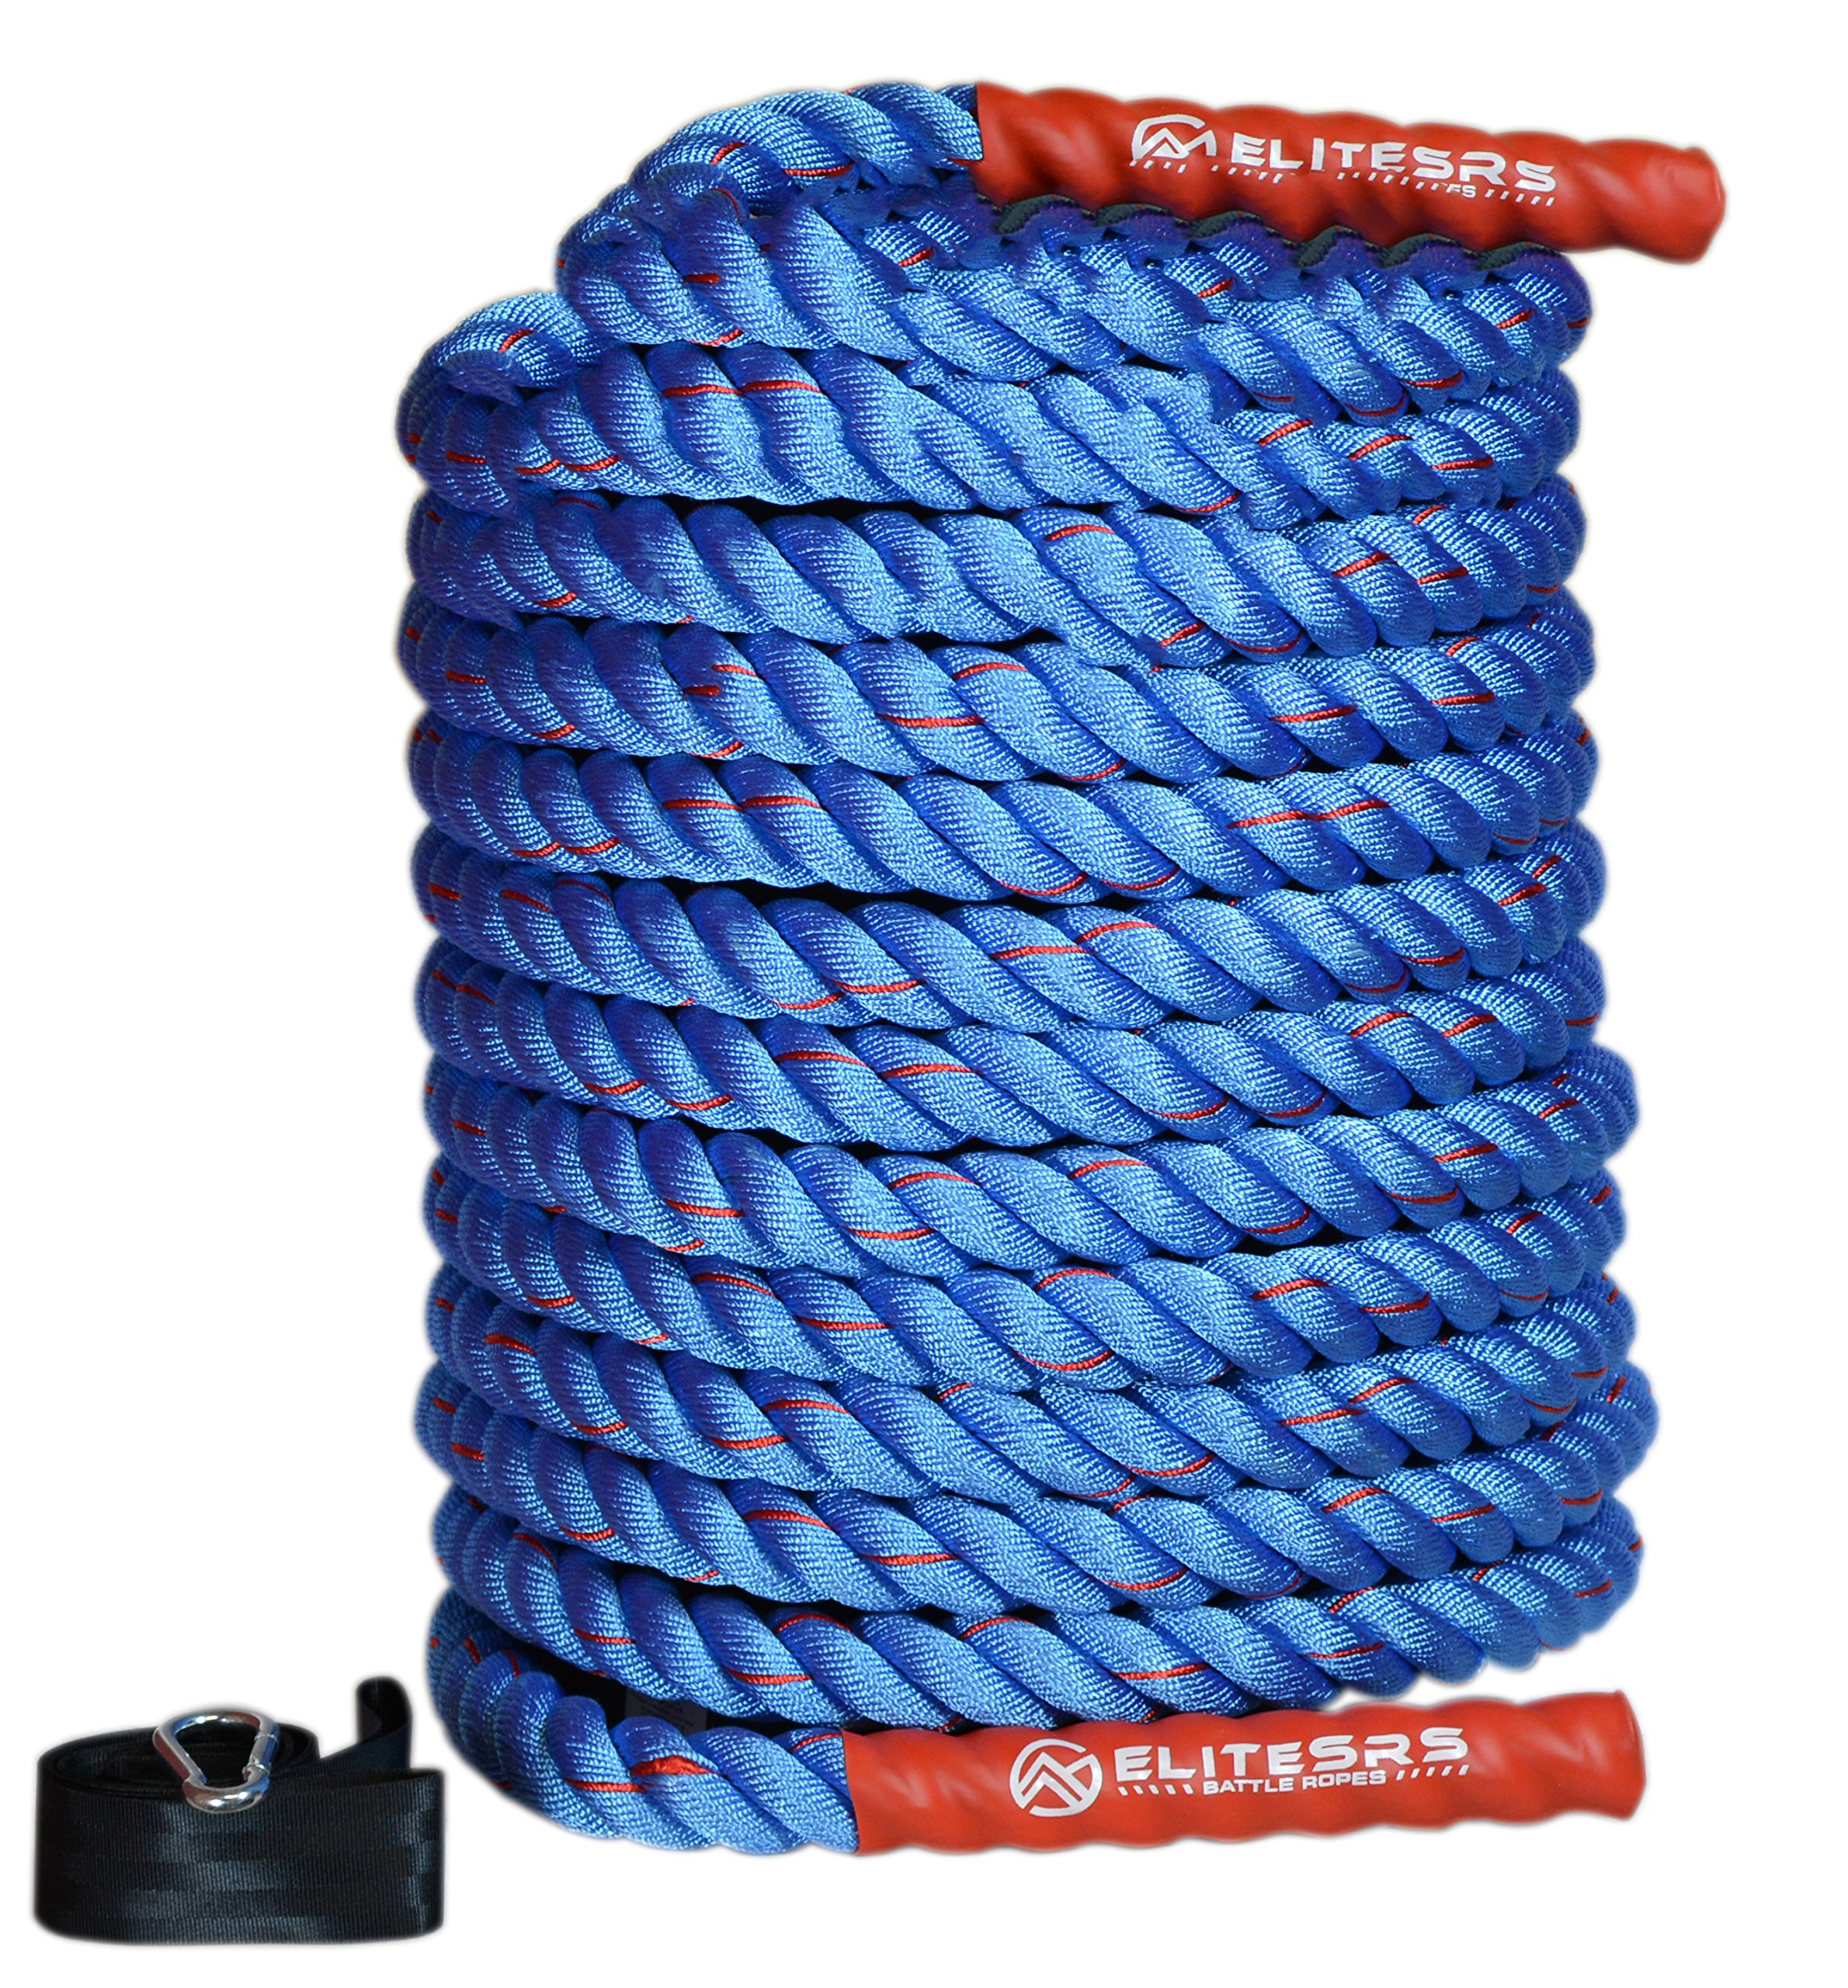 EliteSRS Fitness Battle Ropes with Anchor Kit for Core Exercise, Fitness Rope and Strength Training - 1.5'' or 2'' in 30ft, 40ft or 50ft - Blue/Red 1.5'' x 40ft